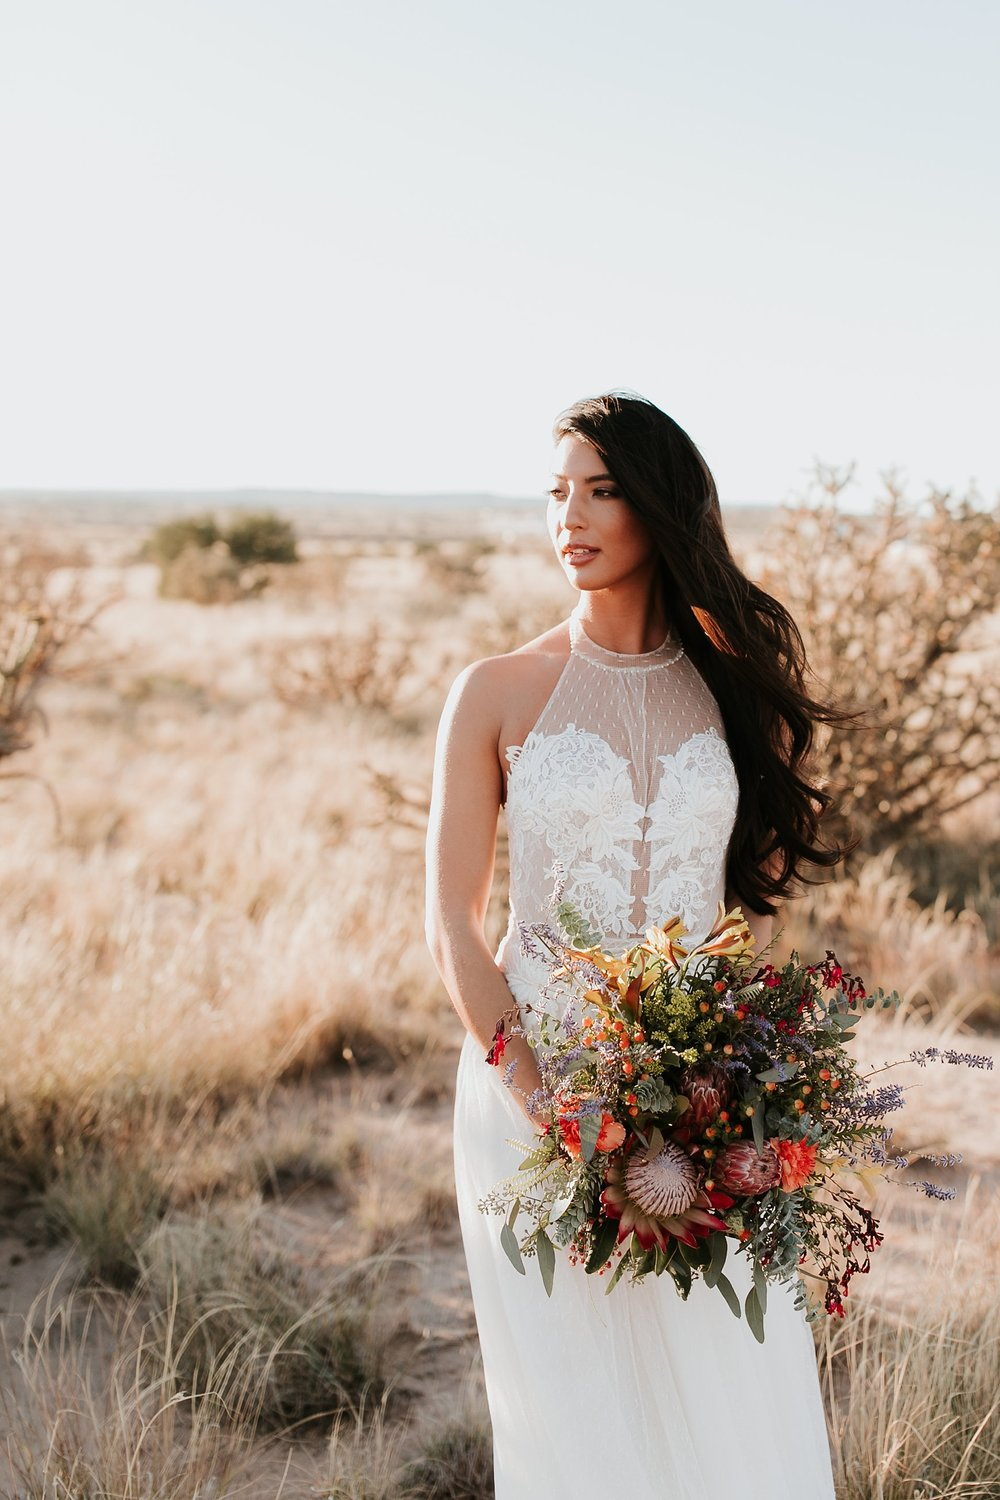 Alicia+lucia+photography+-+albuquerque+wedding+photographer+-+santa+fe+wedding+photography+-+new+mexico+wedding+photographer+-+new+mexico+bride+-+southwest+bridal+session+-+desert+bridal+session+-+santa+fe+bride+-+albuquerque+bride_0014.jpg